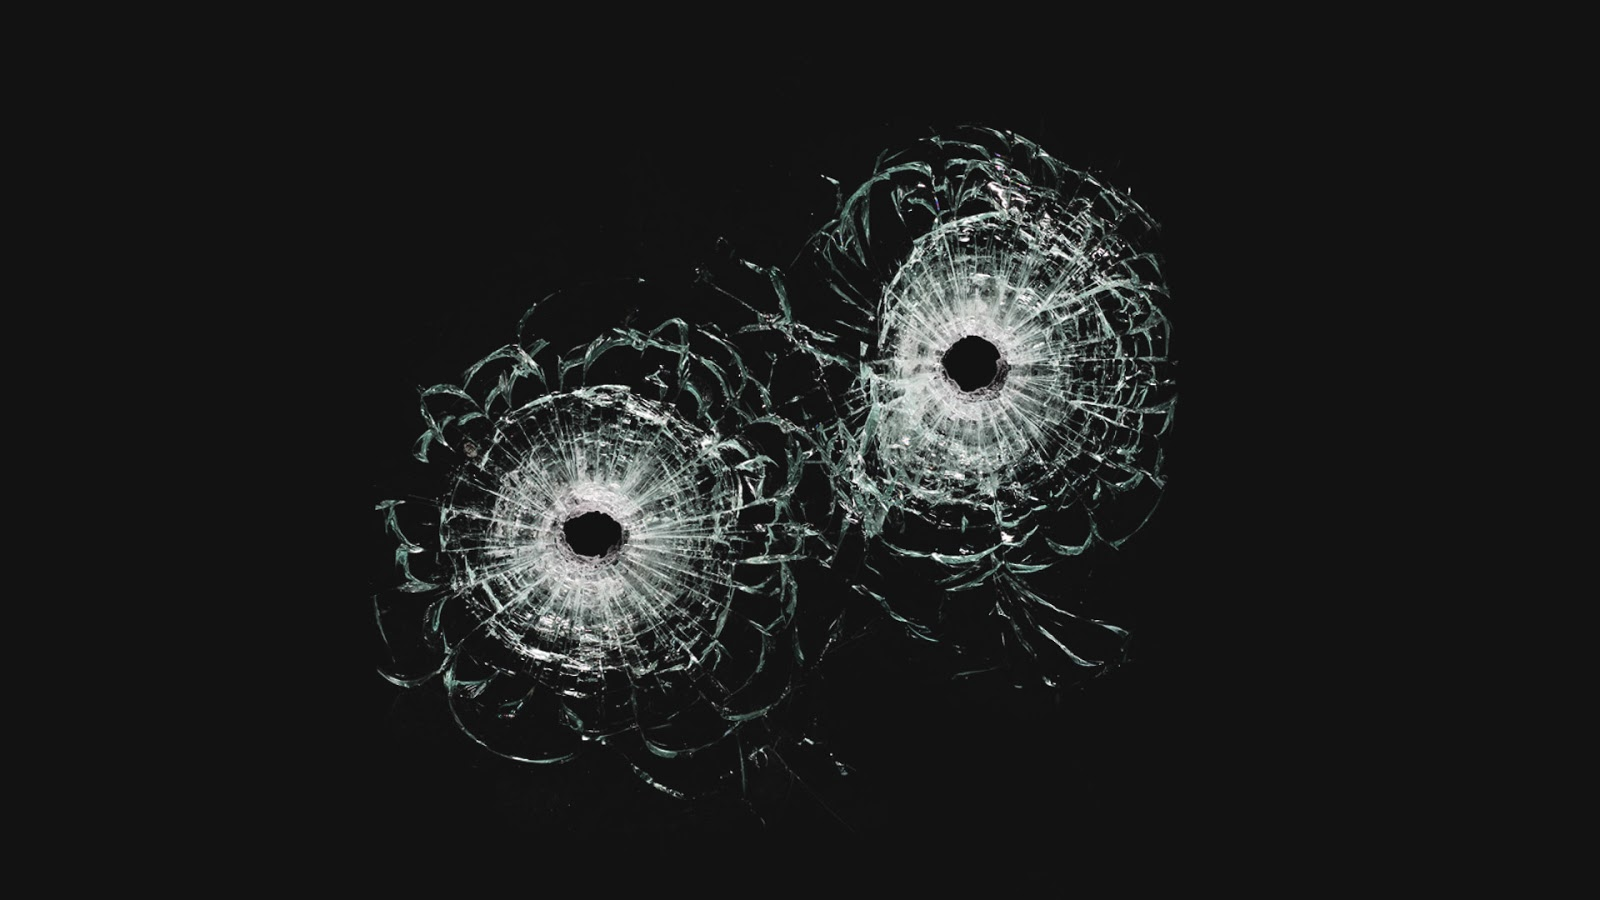 how to draw a realistic bullet hole